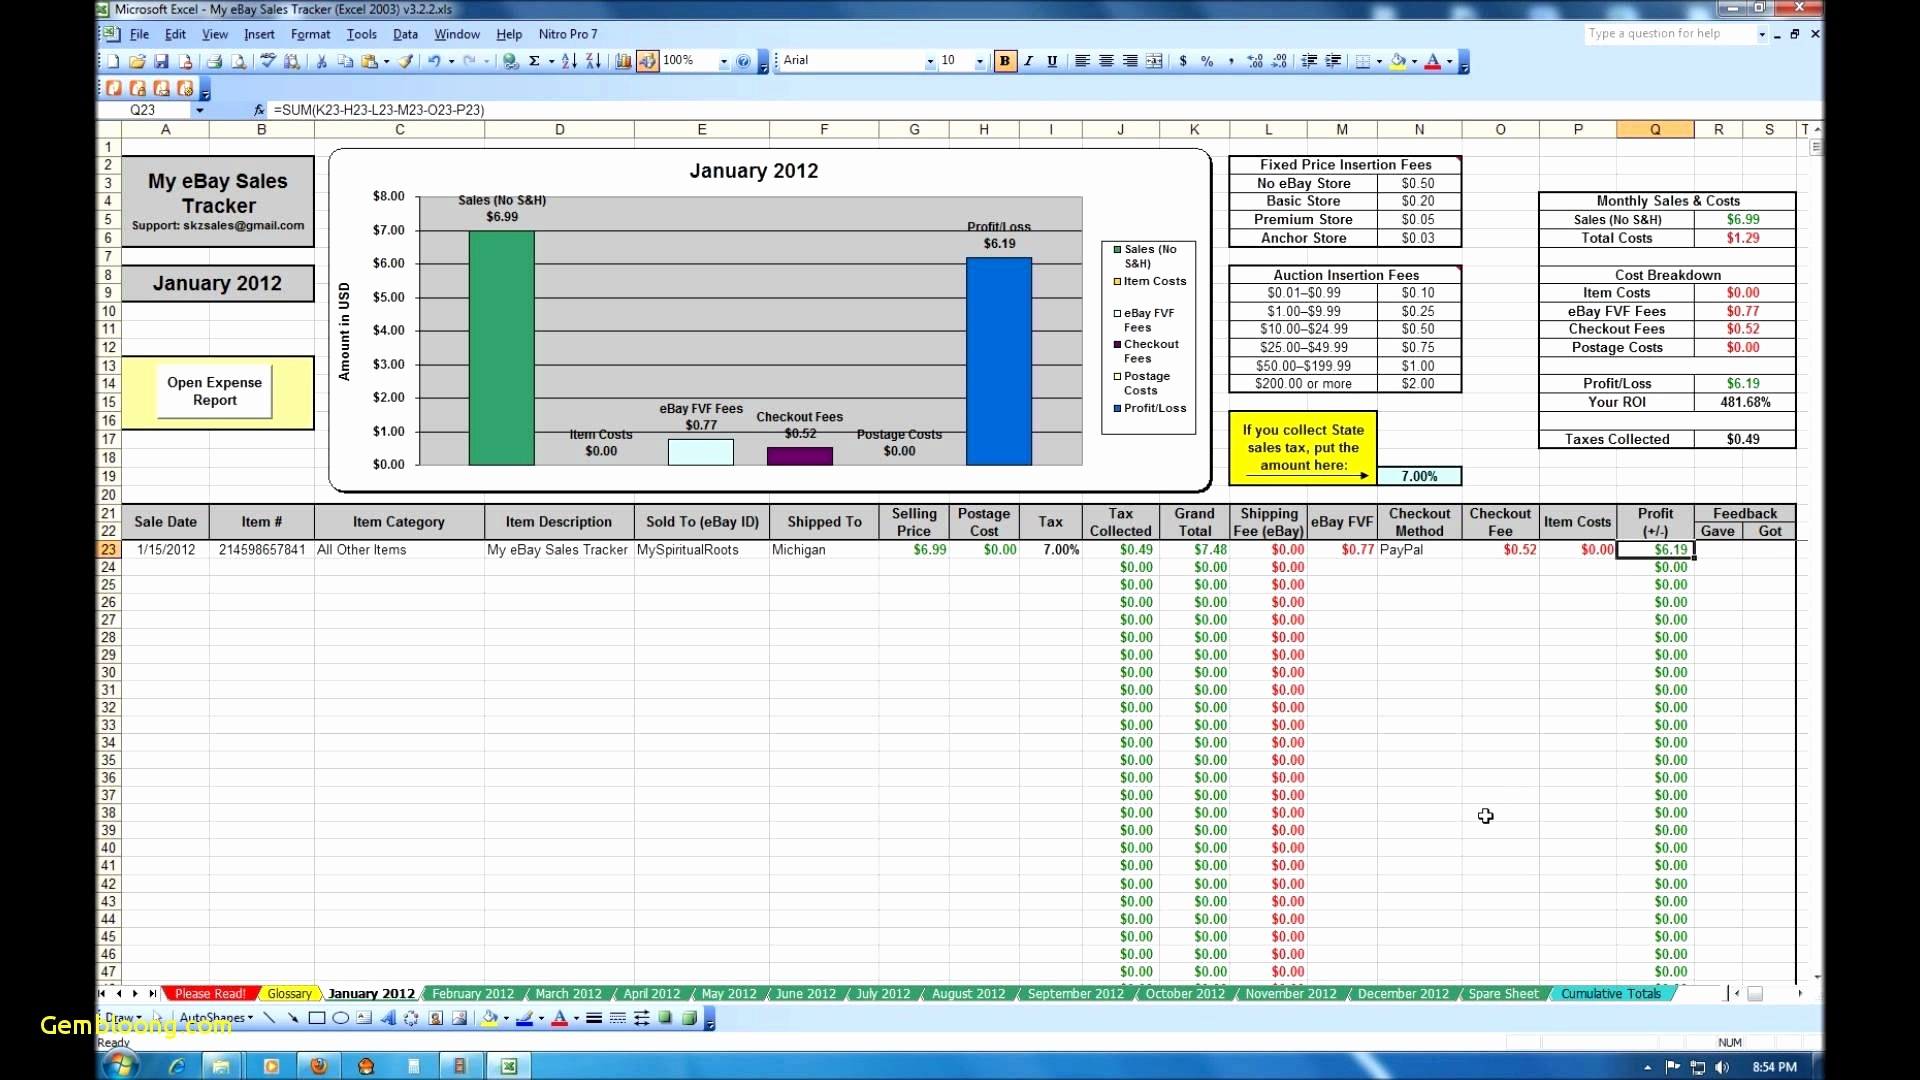 50 Lovely Inventory Management In Excel Free Download - Documents Throughout Inventory Management Excel Sheet Download